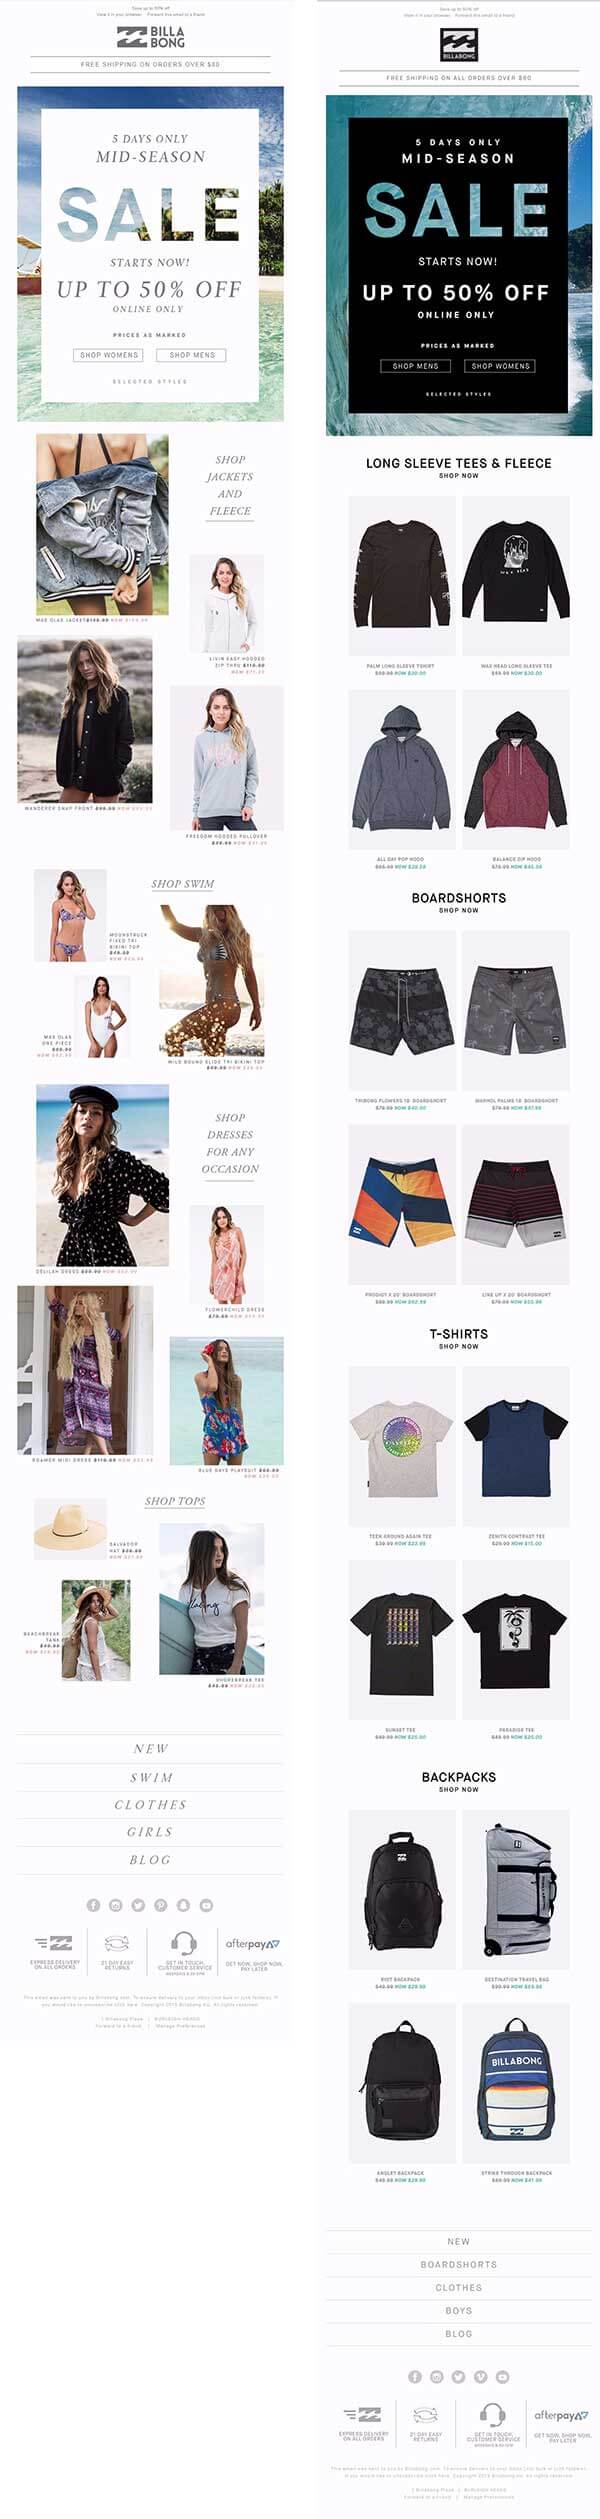 personalized emails - Billabong